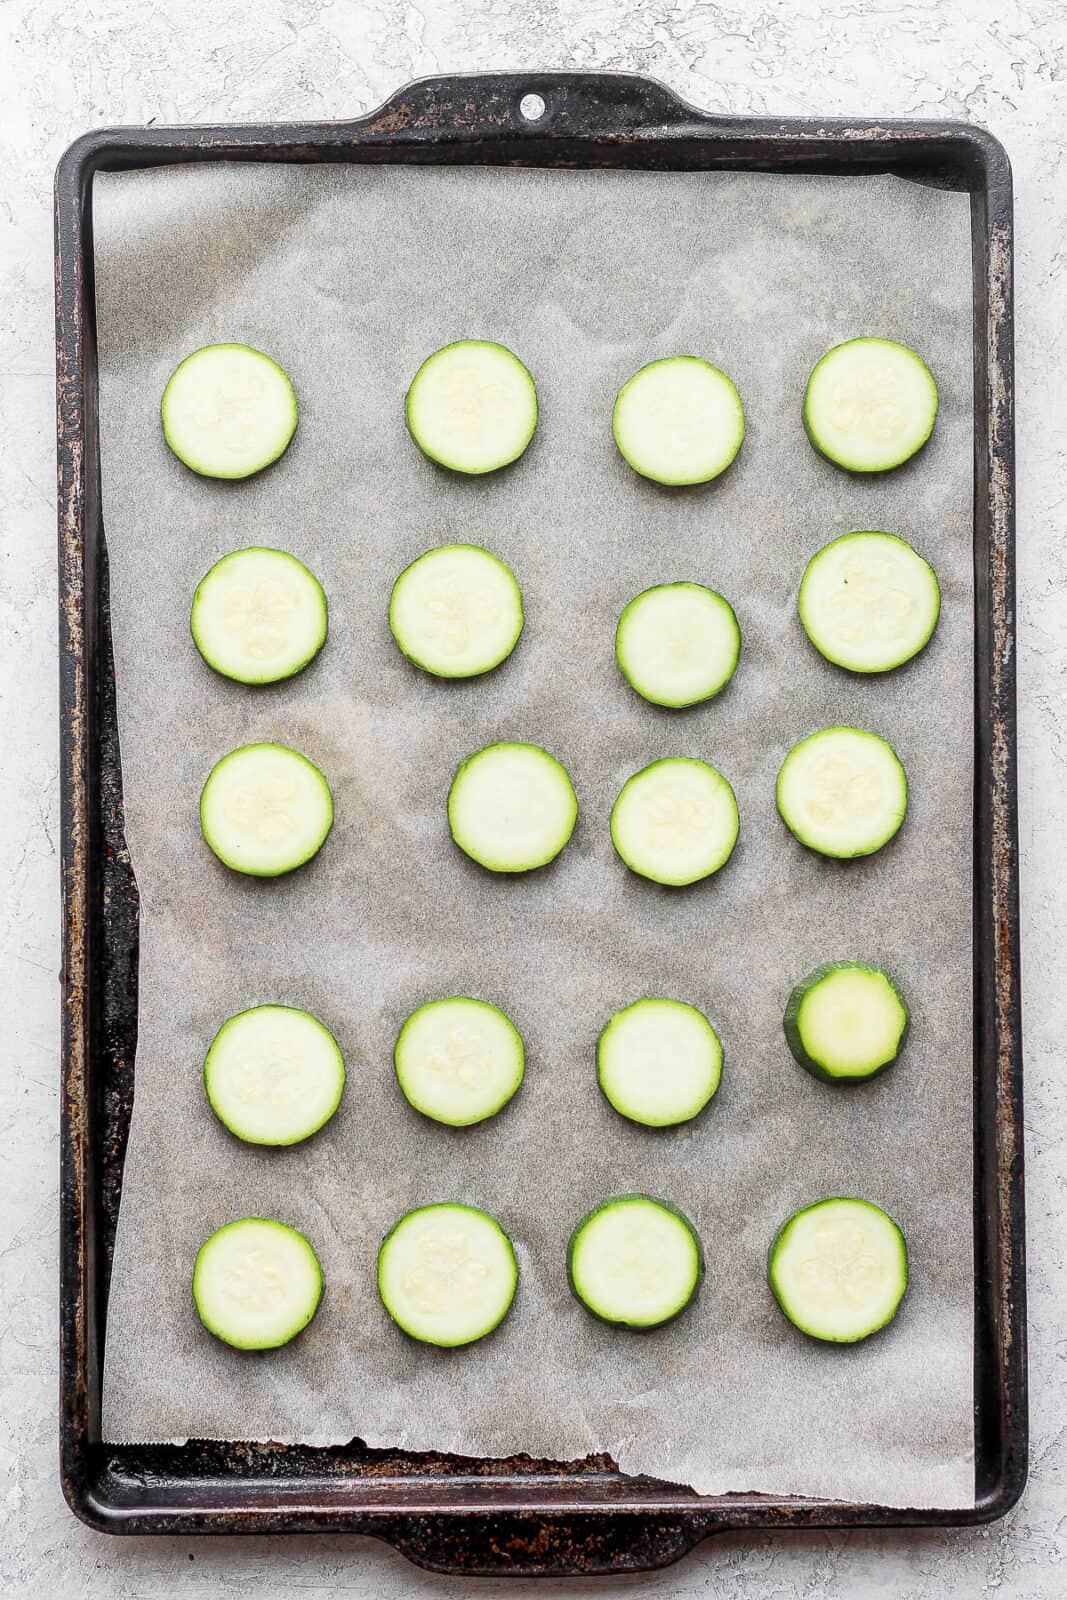 Blanches slices of zucchini on a parchment-lined baking sheet.